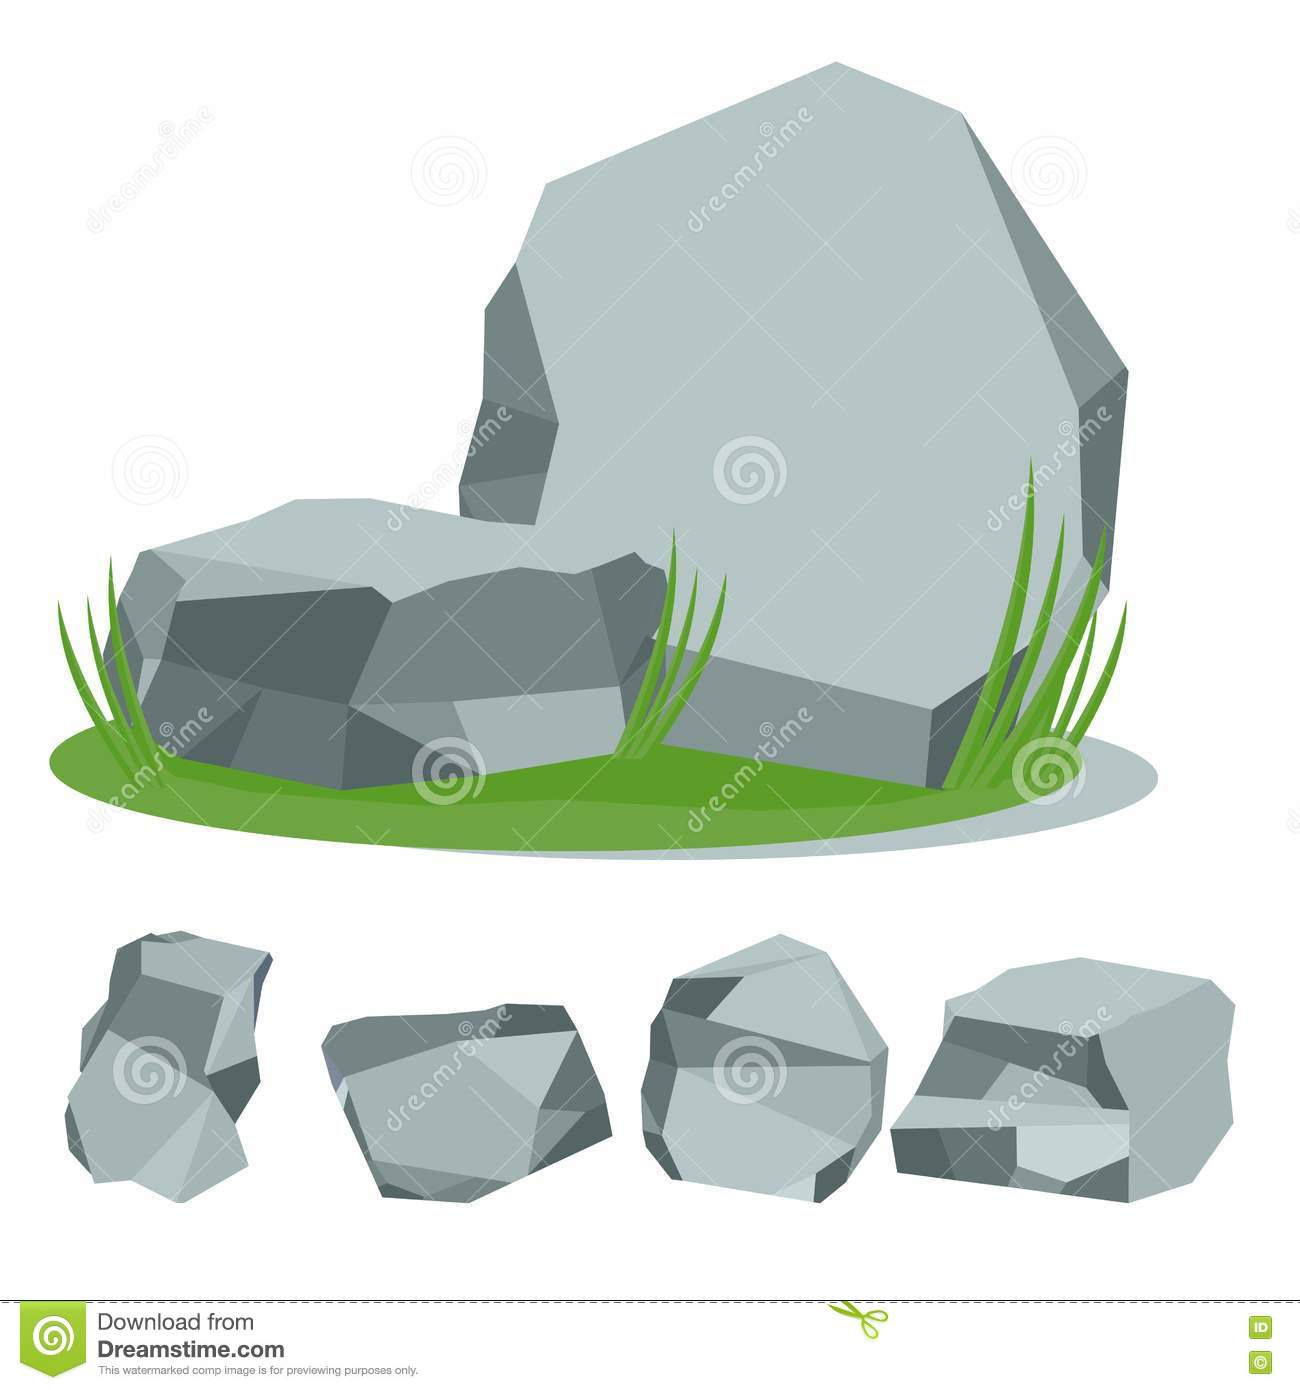 Rock stone with grass